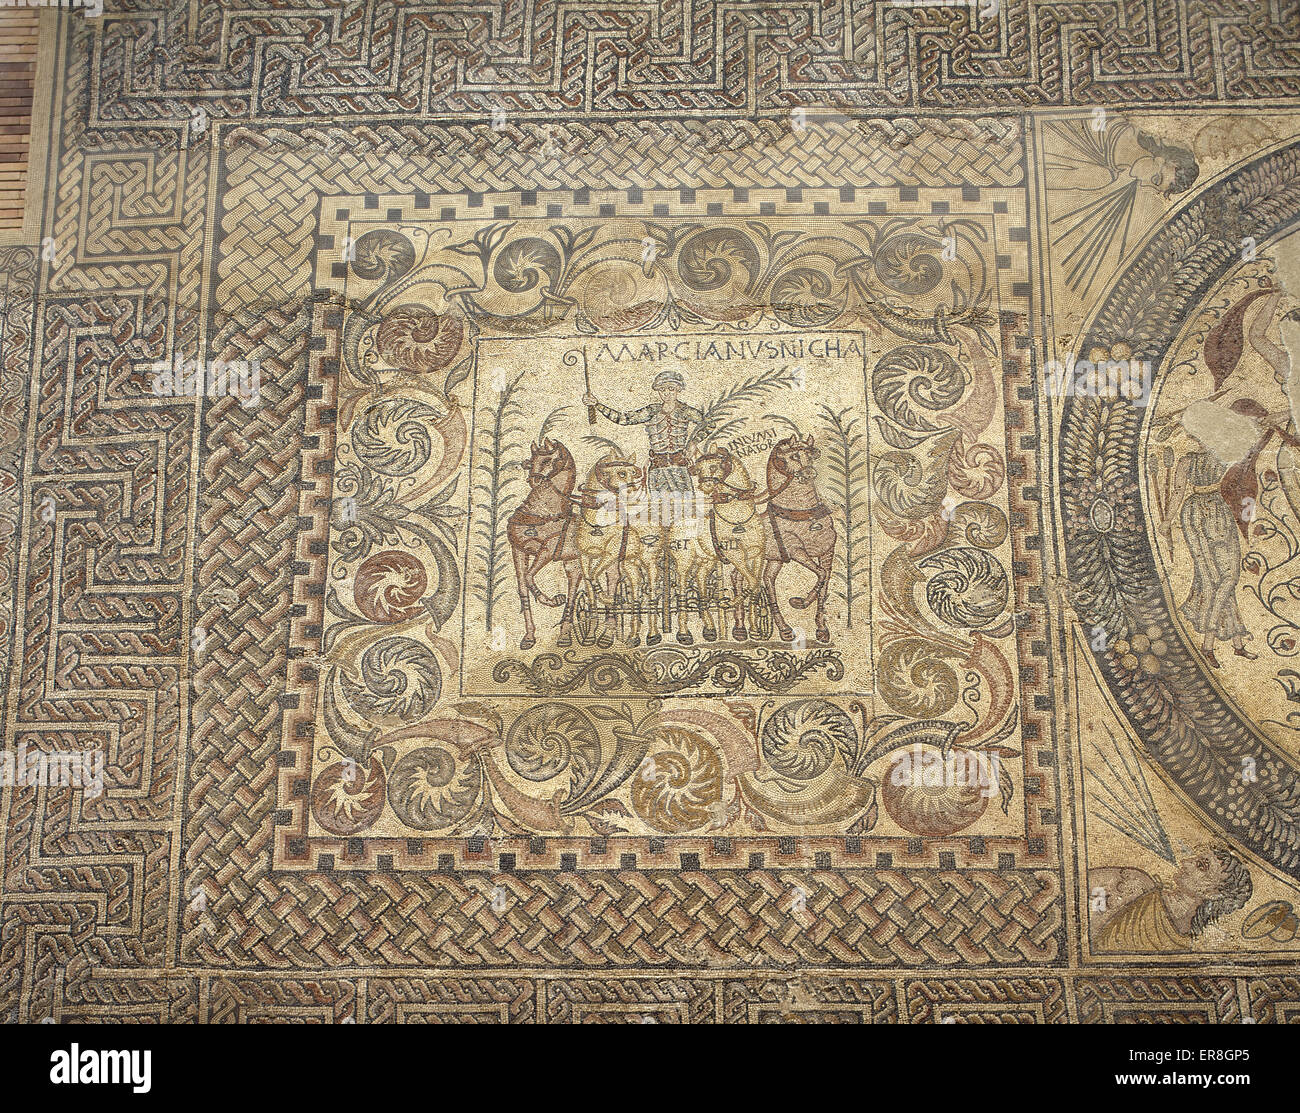 The Aurigas mosaic. 4th century. The victoriuos charioteer Marcianus with his chariot. He carries a palm of triumph - Stock Image